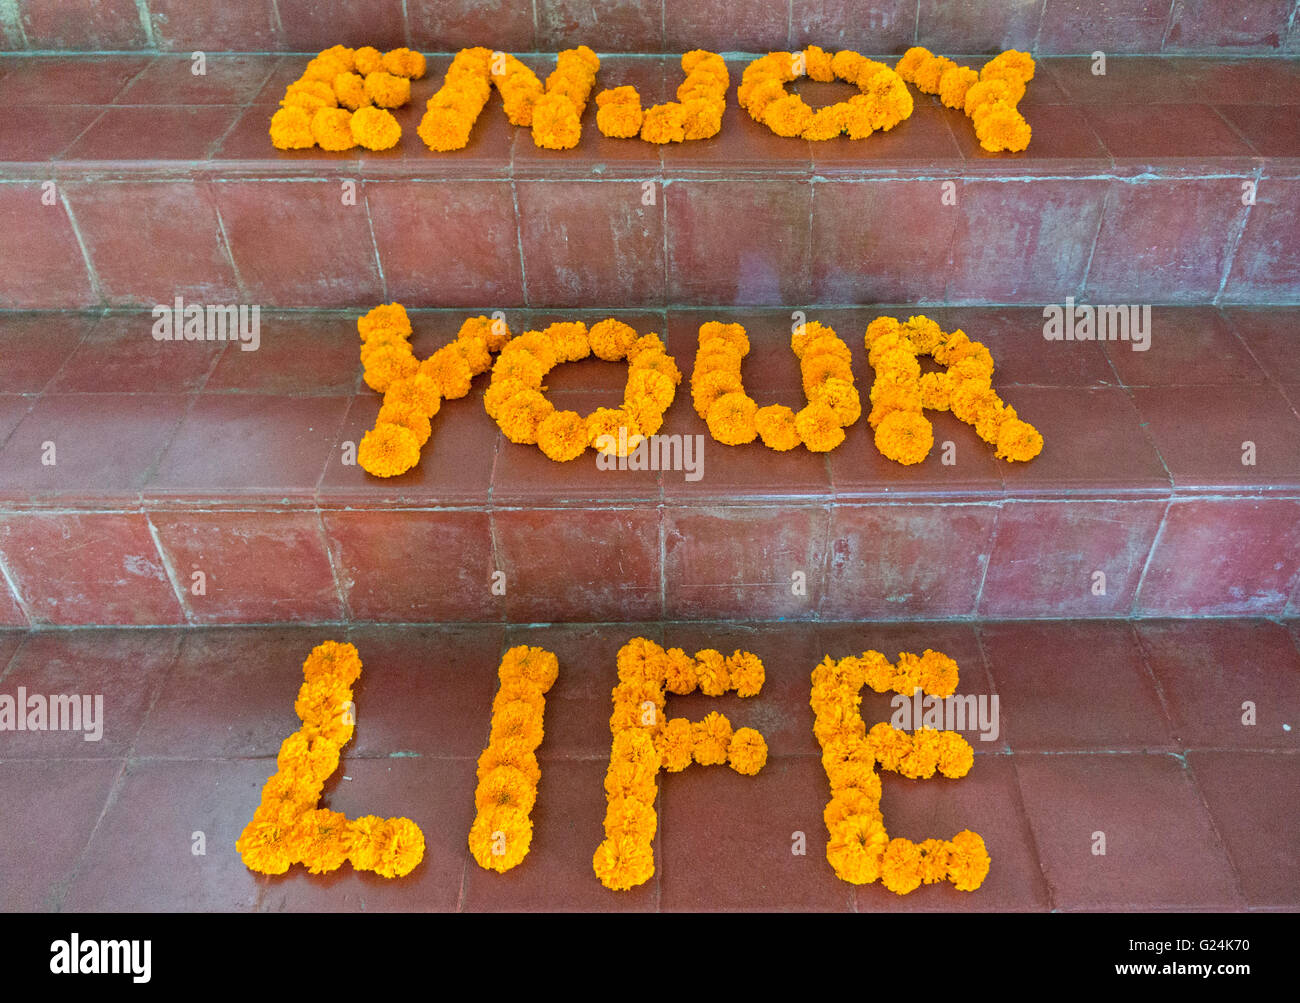 Flowers on stairs forming the words 'Enjoy your Life'. Motivational Quote - Stock Image